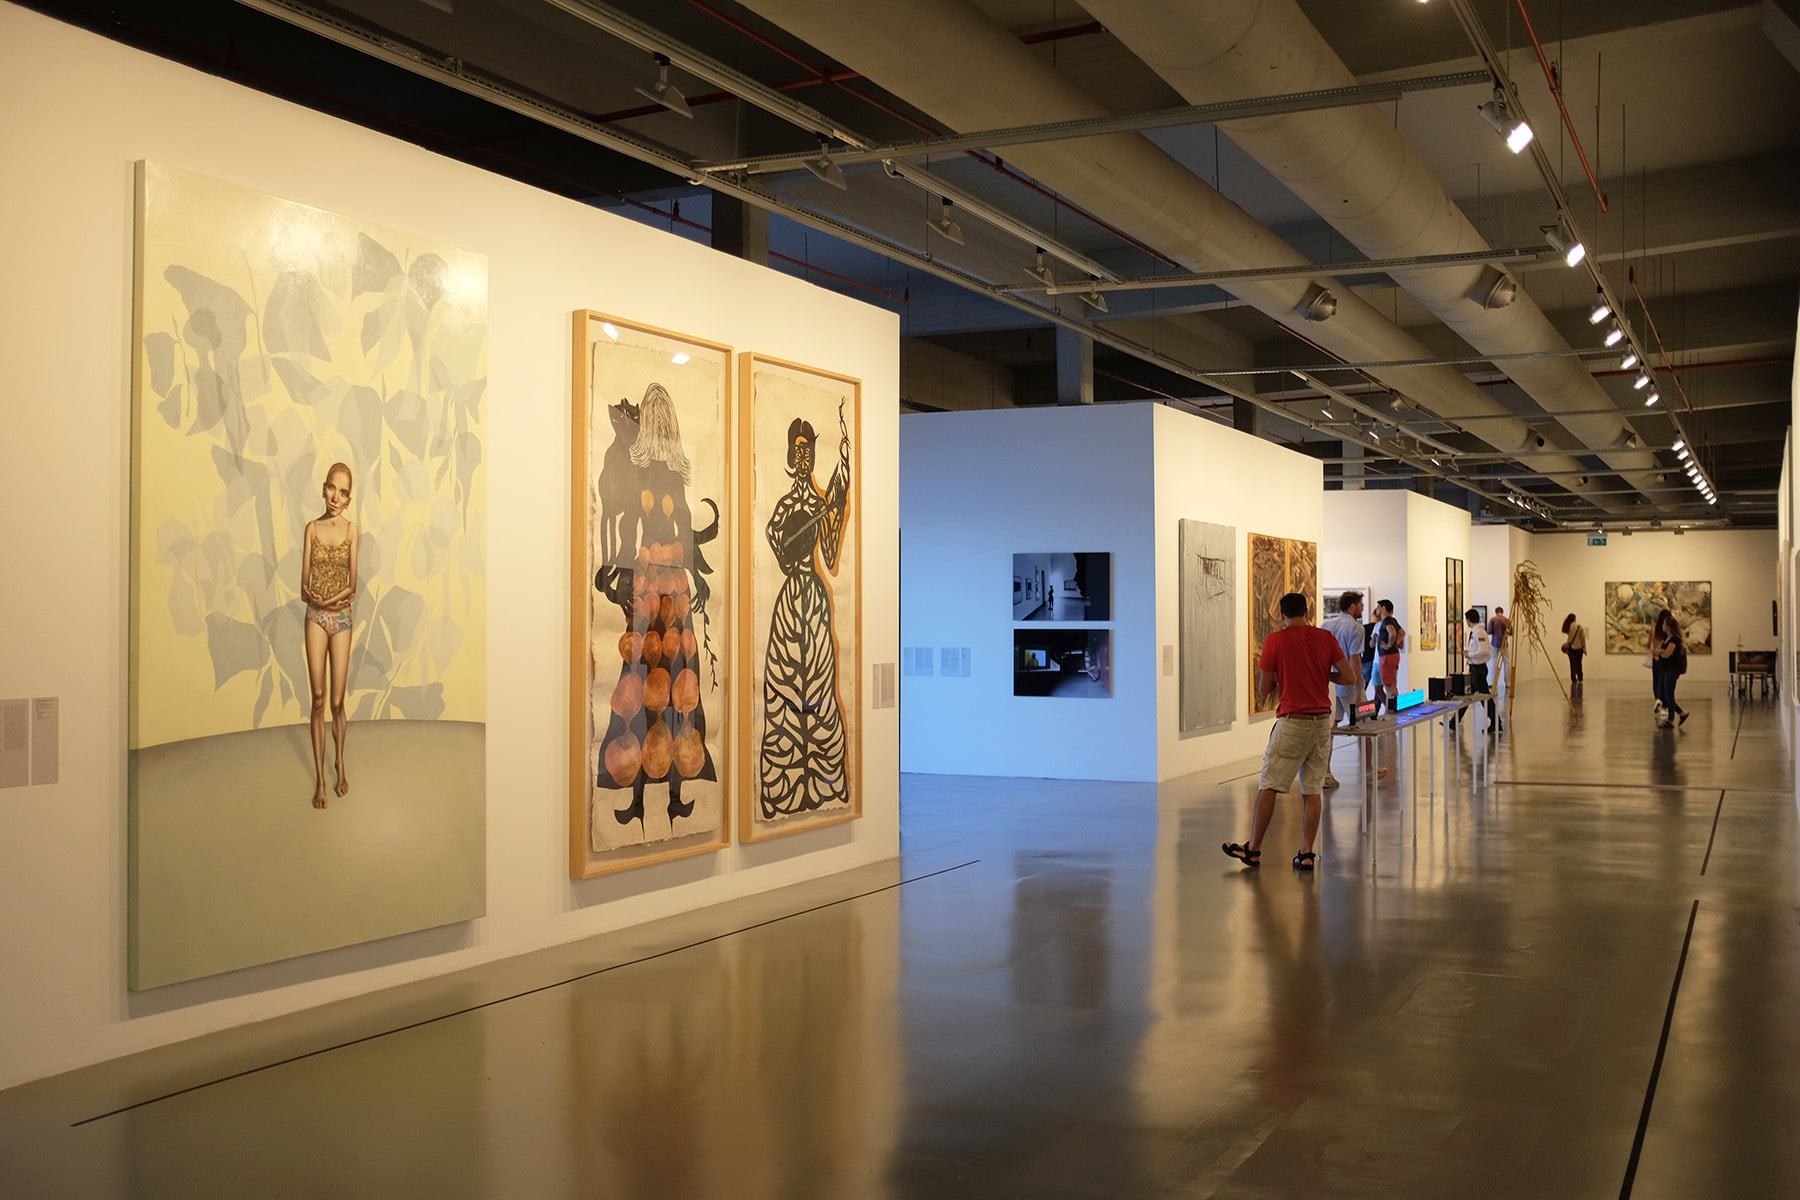 Istanbul Modern is another notable mention for its contemporary art displays.